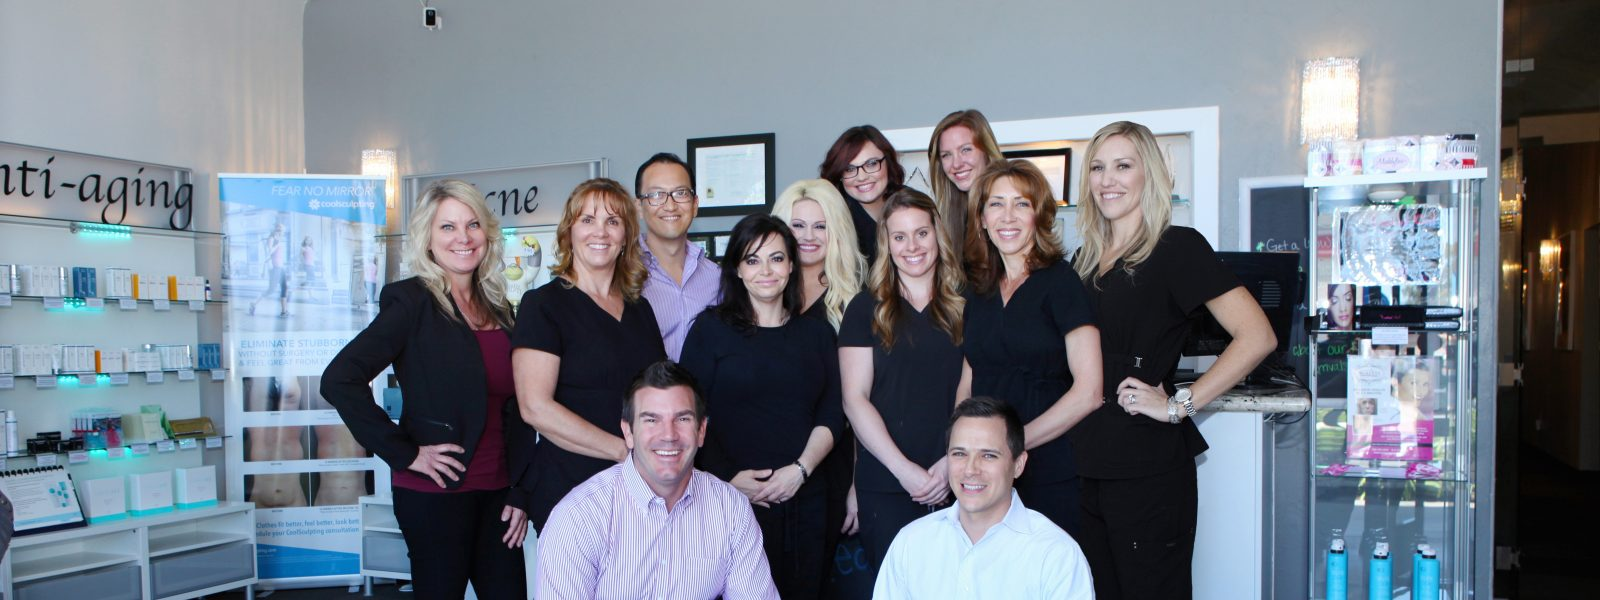 medspa team for coolsculpting, botox, laser hair removal, facials